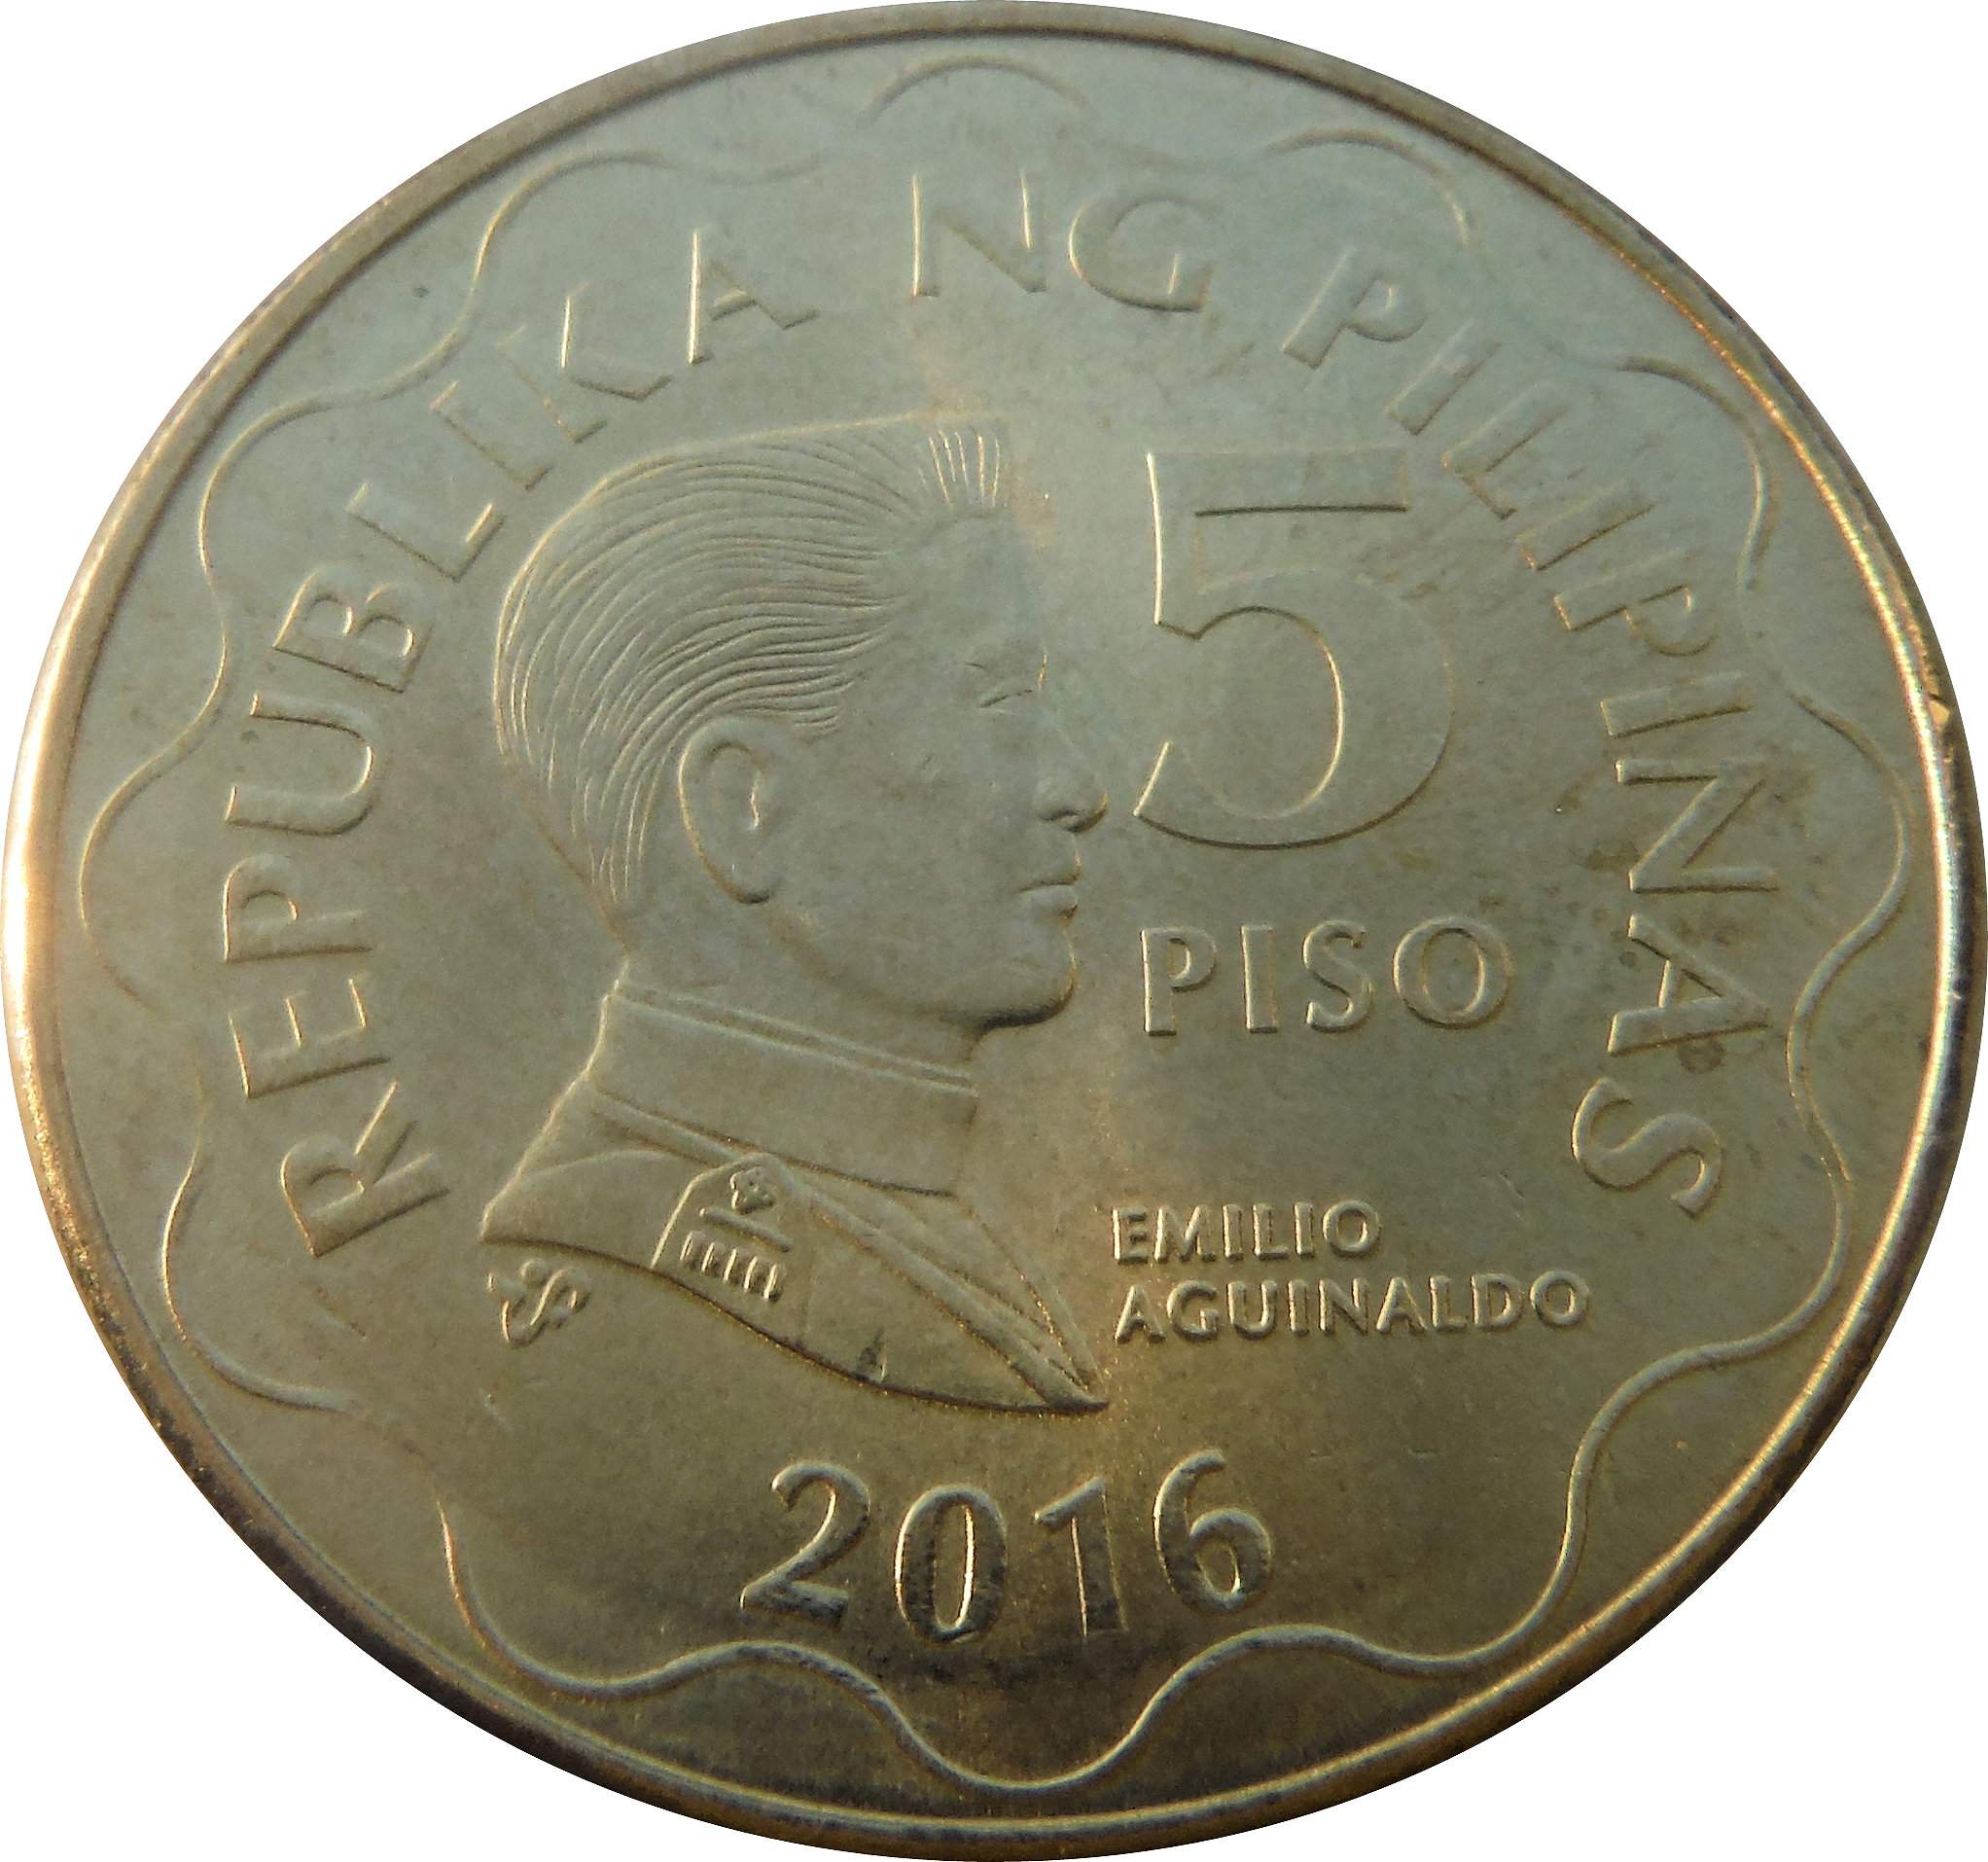 Coin Ph: Philippines